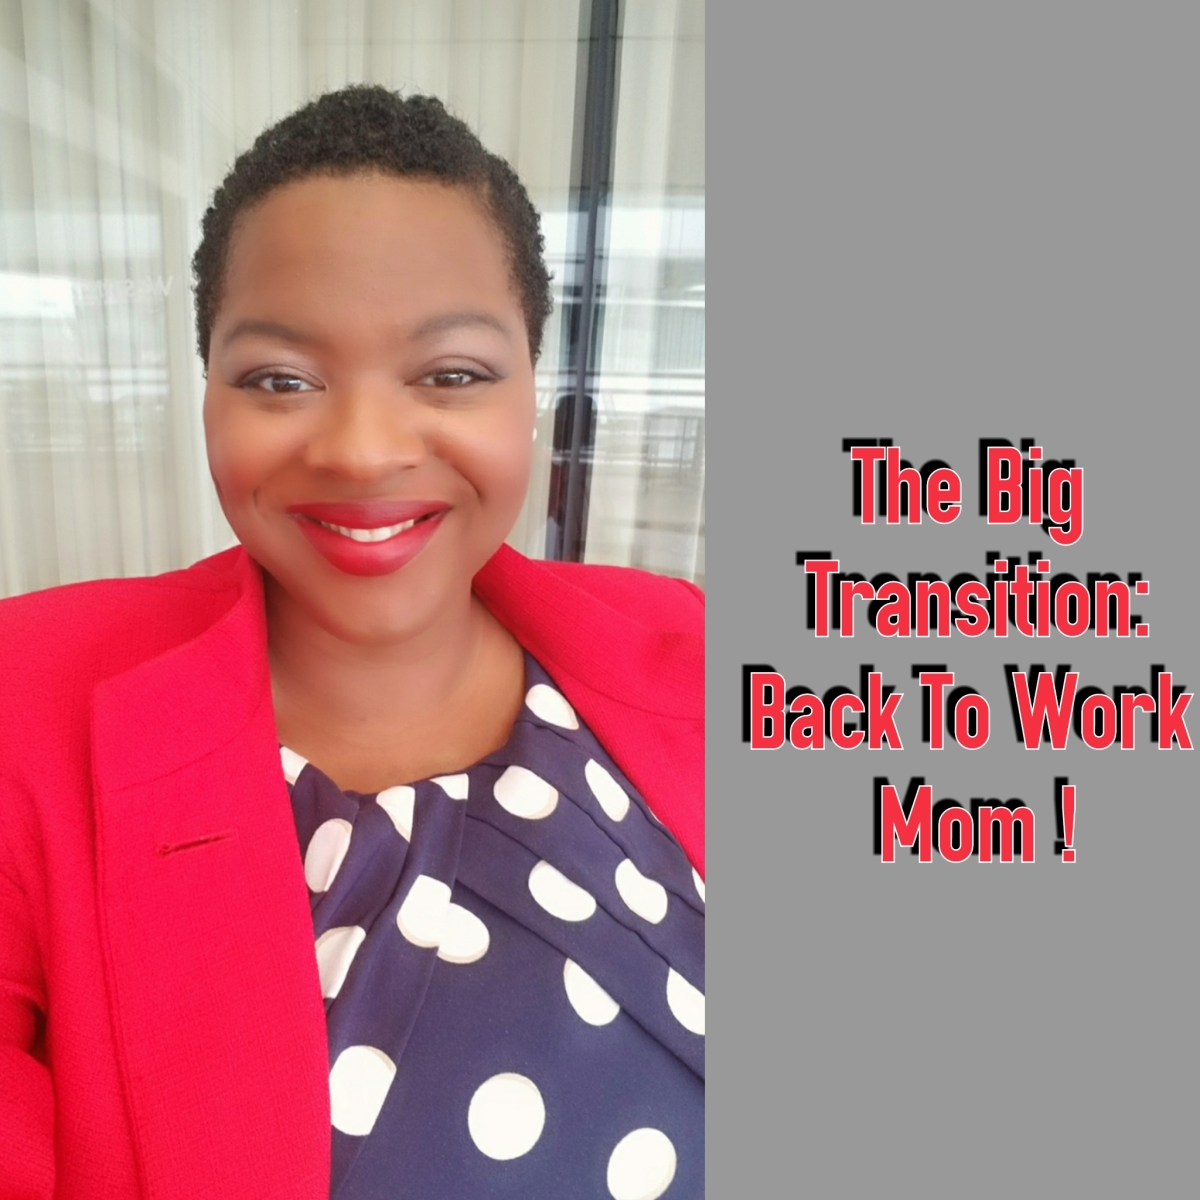 The Big Transition: Back To Work Mom!